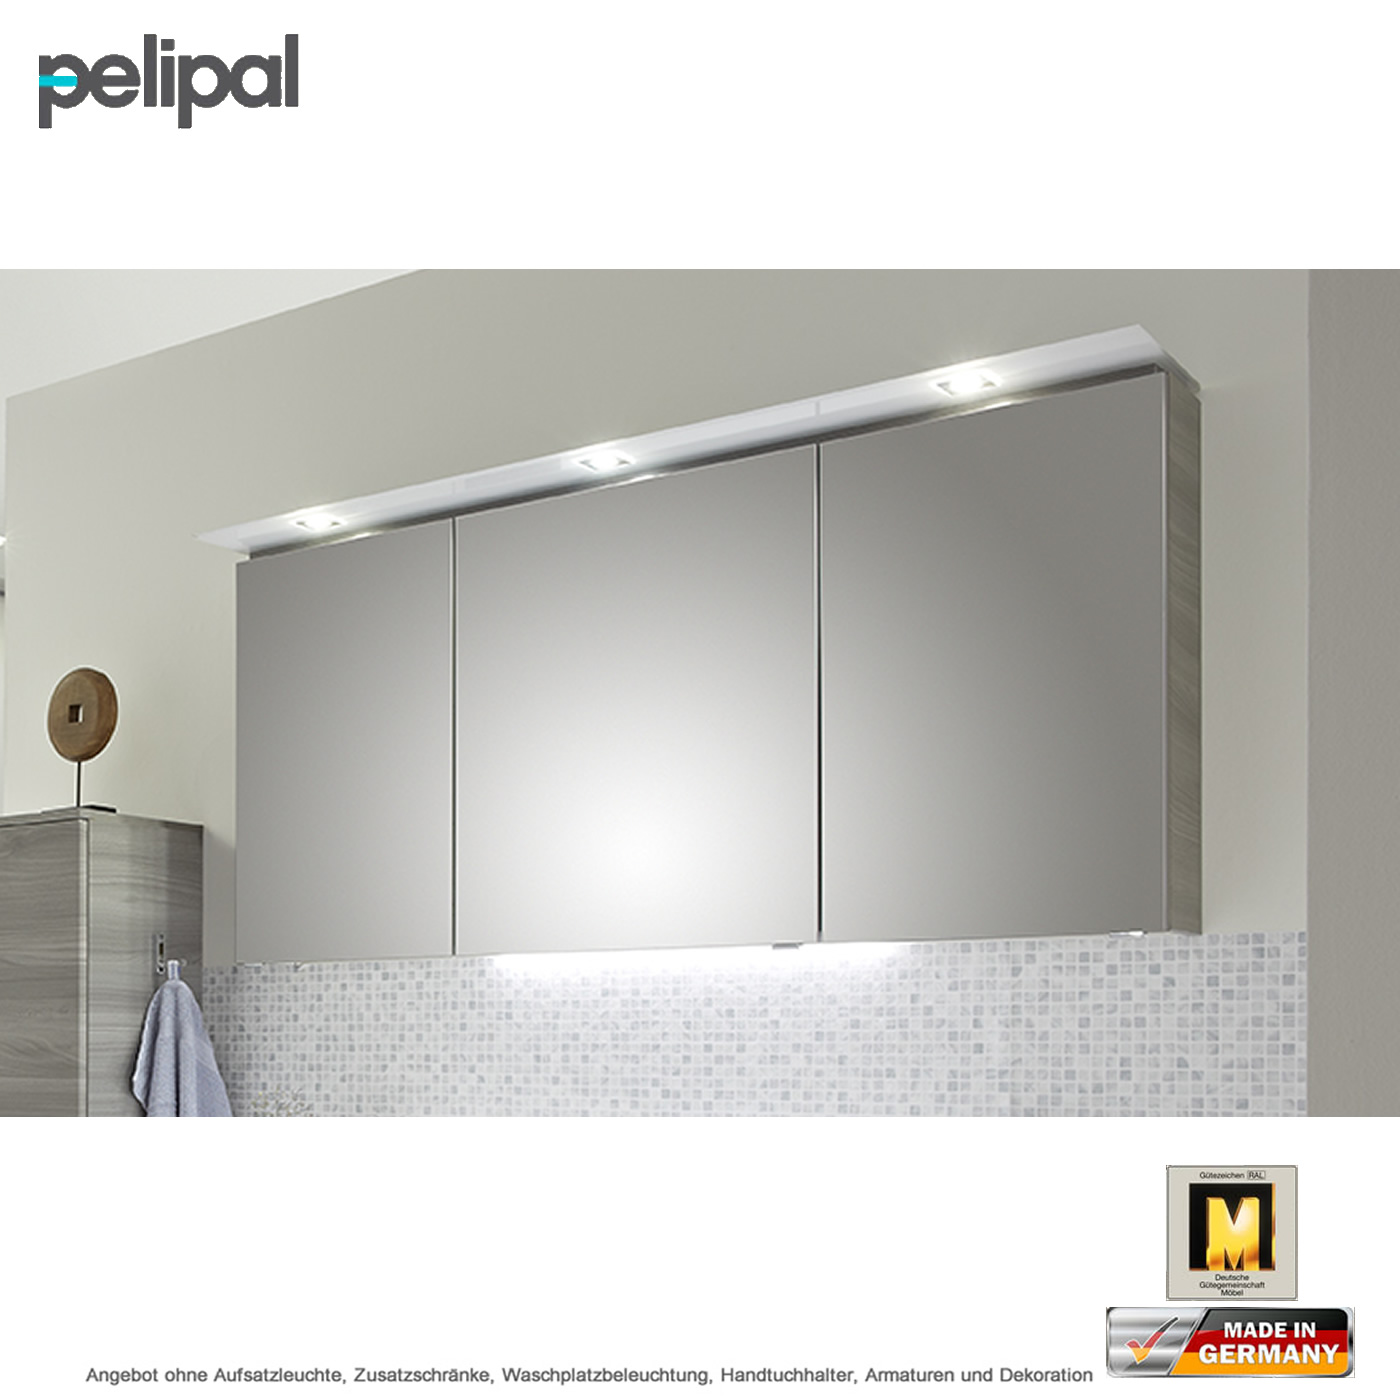 pelipal solitaire 7005 spiegelschrank mit led kranz 150 cm impulsbad. Black Bedroom Furniture Sets. Home Design Ideas